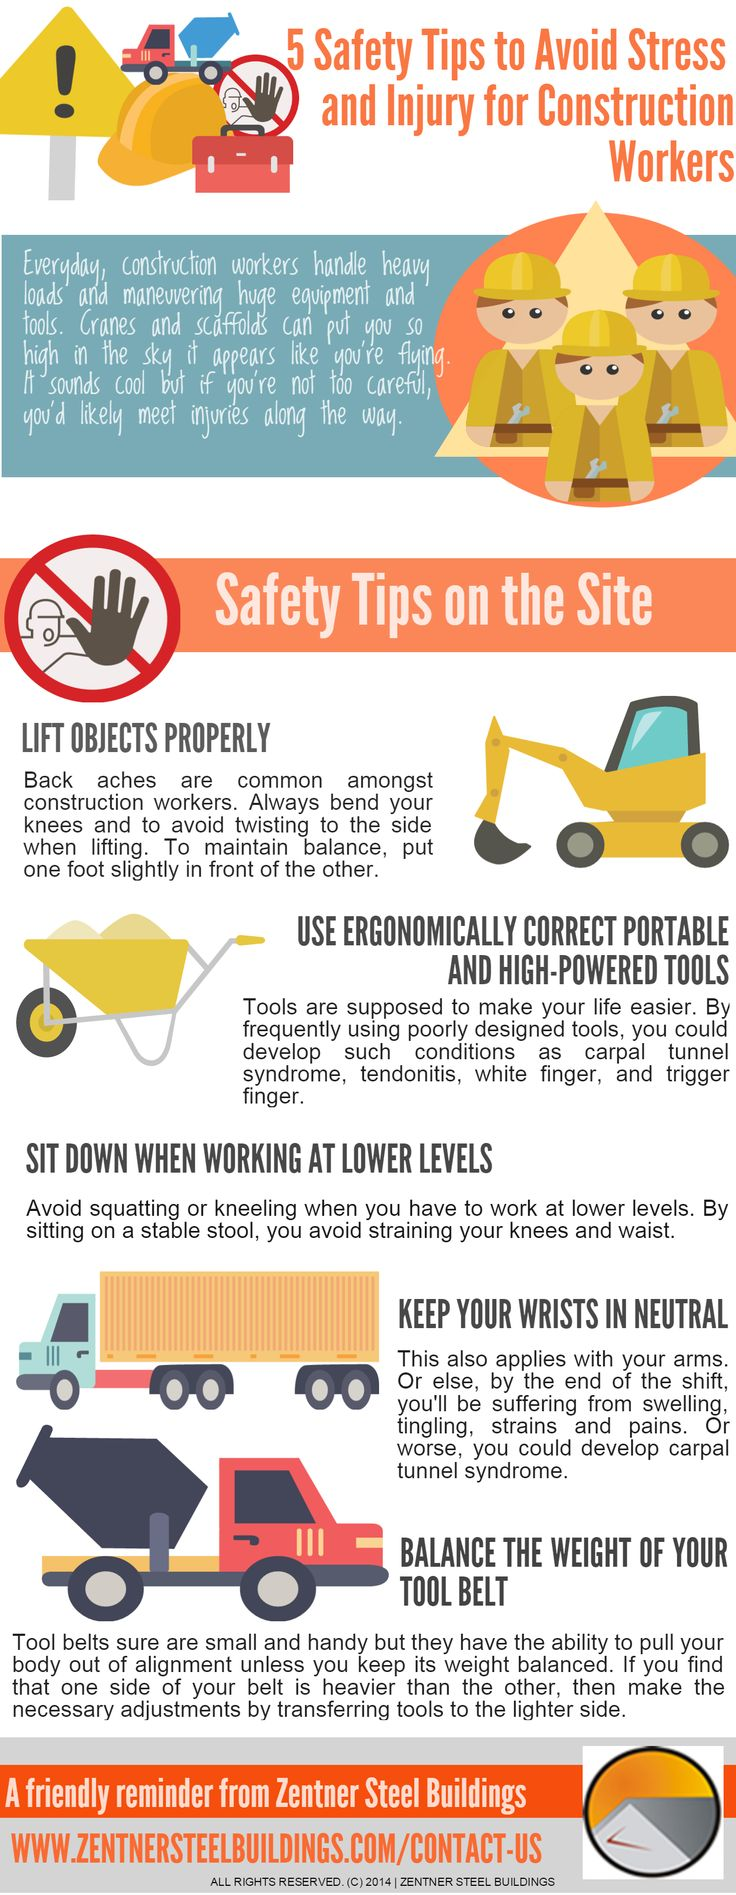 INFOGRAPHIC5 TIPS TO AVOID STRESS AND INJURY FOR